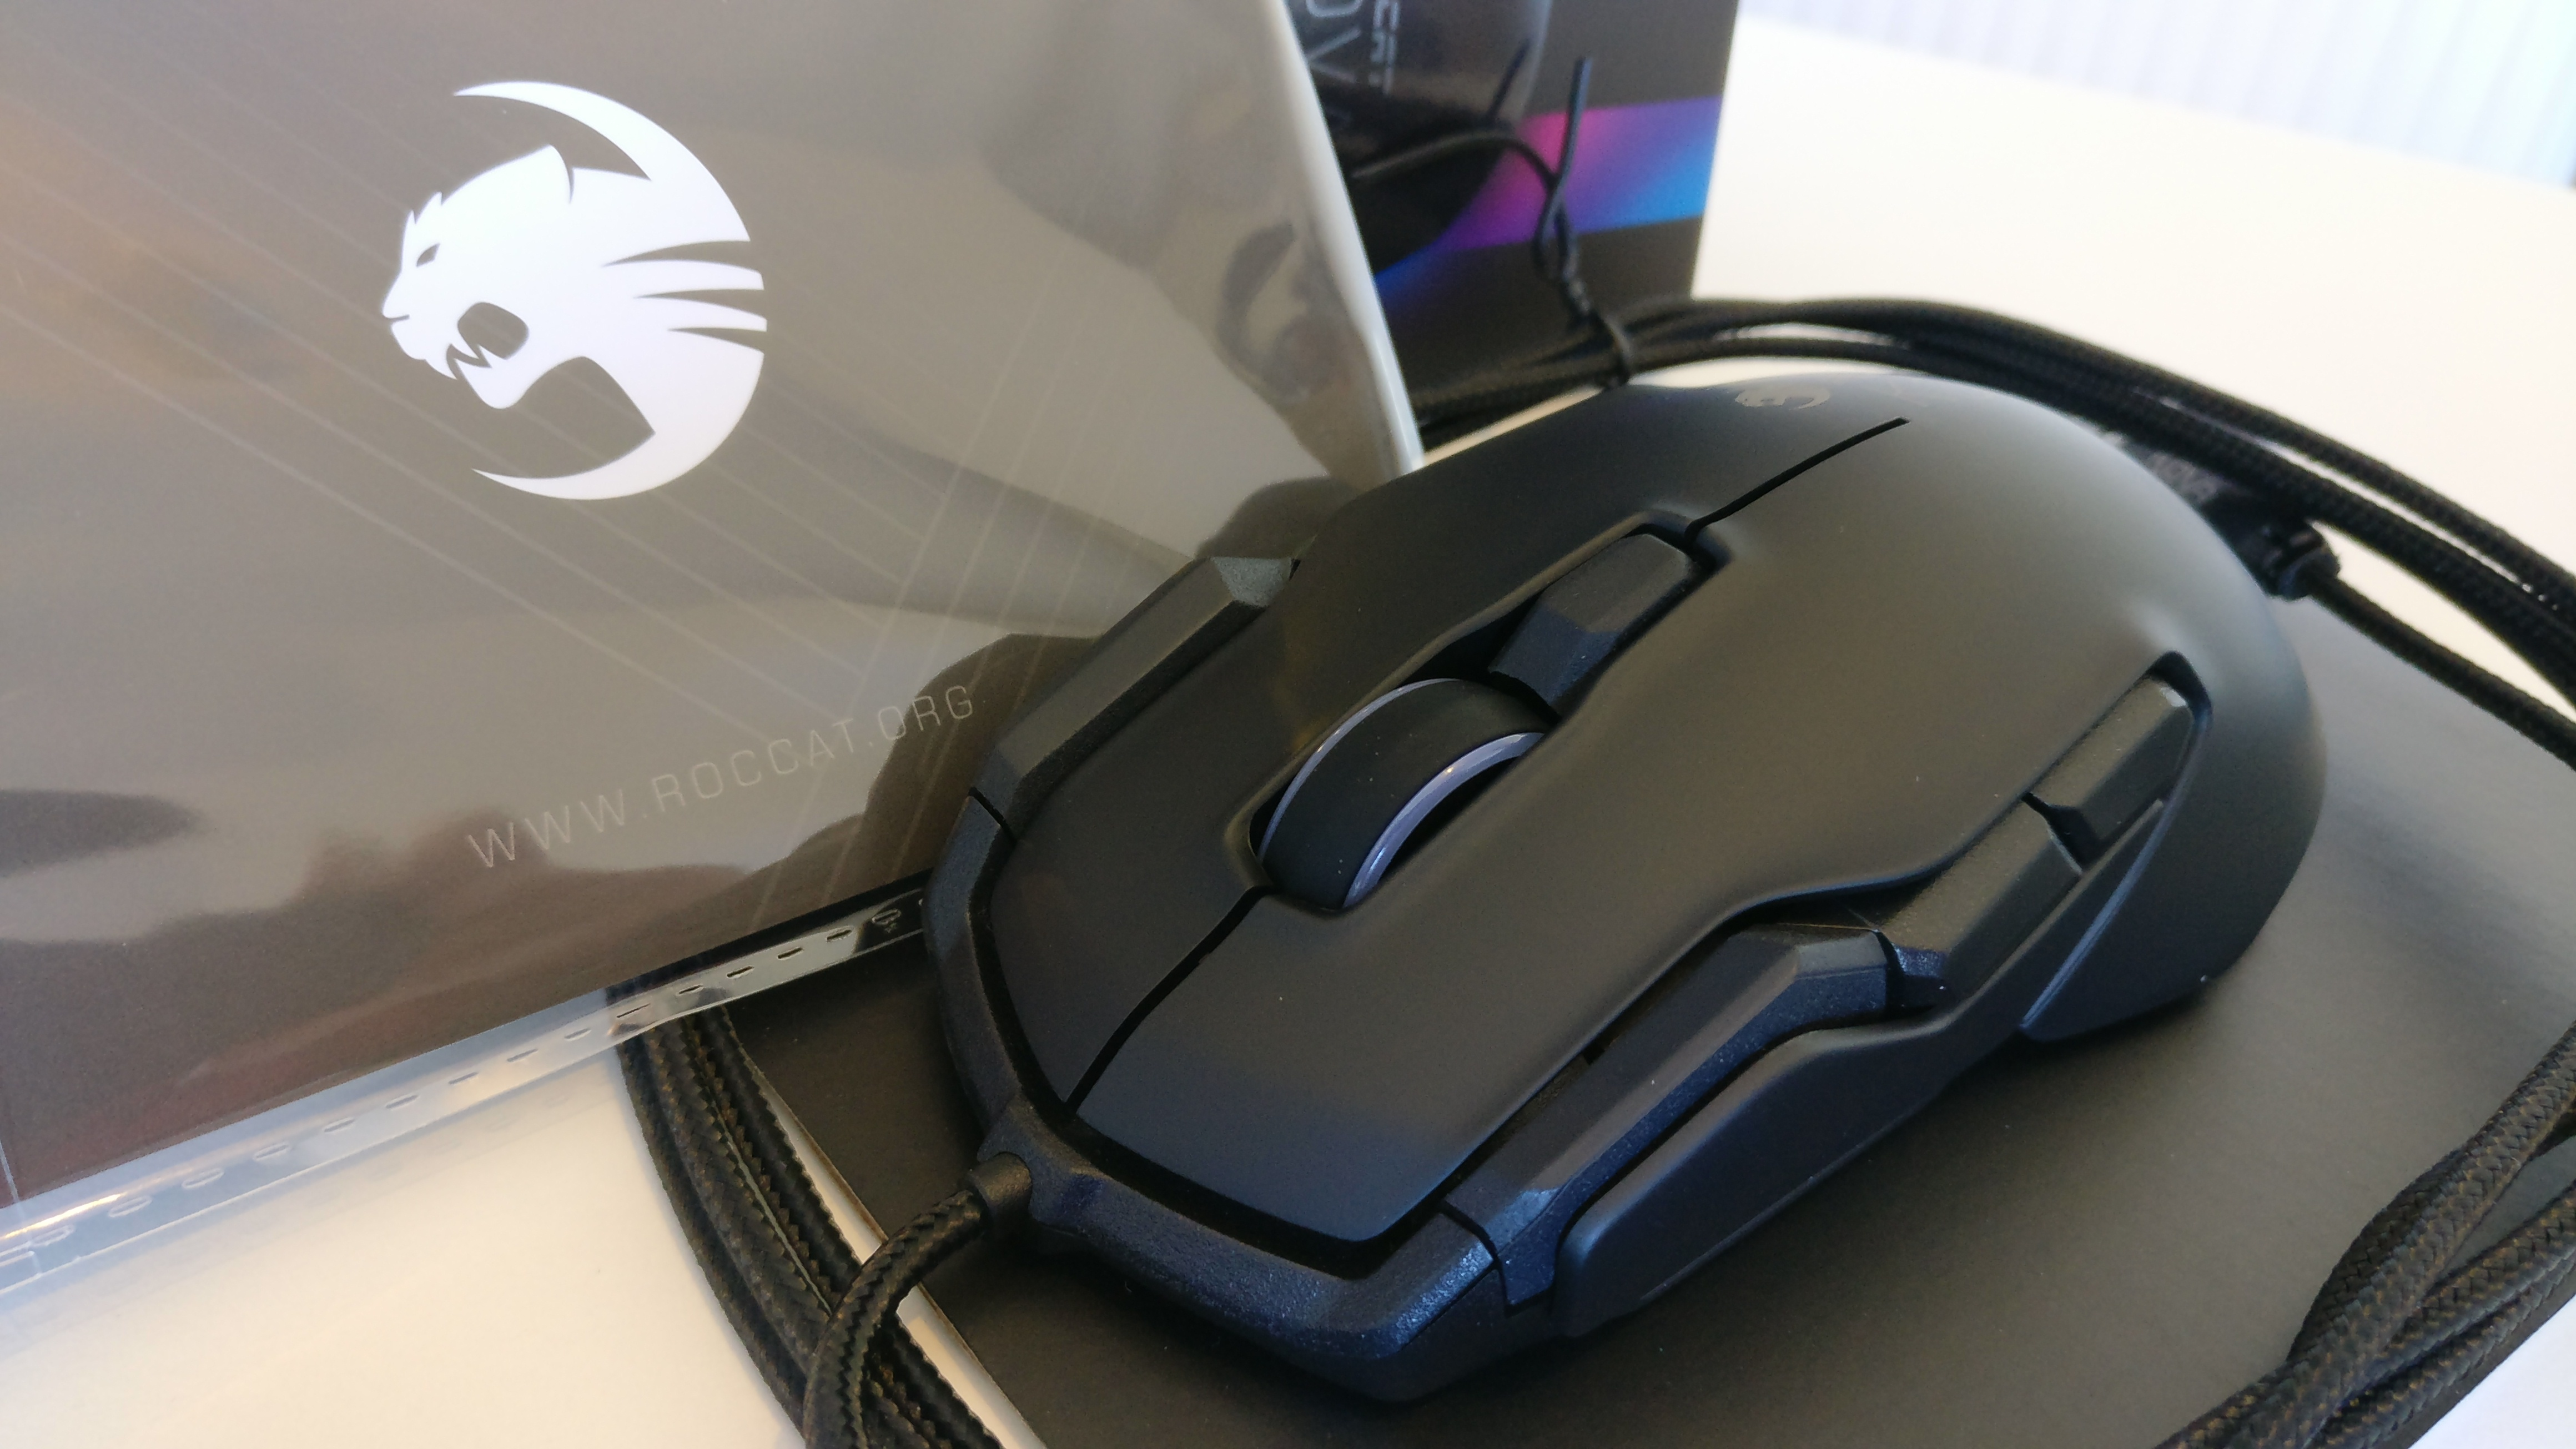 f18a742953b Introducing the Roccat Kova Aimo - Gaming Mouse Review | Chaos Hour